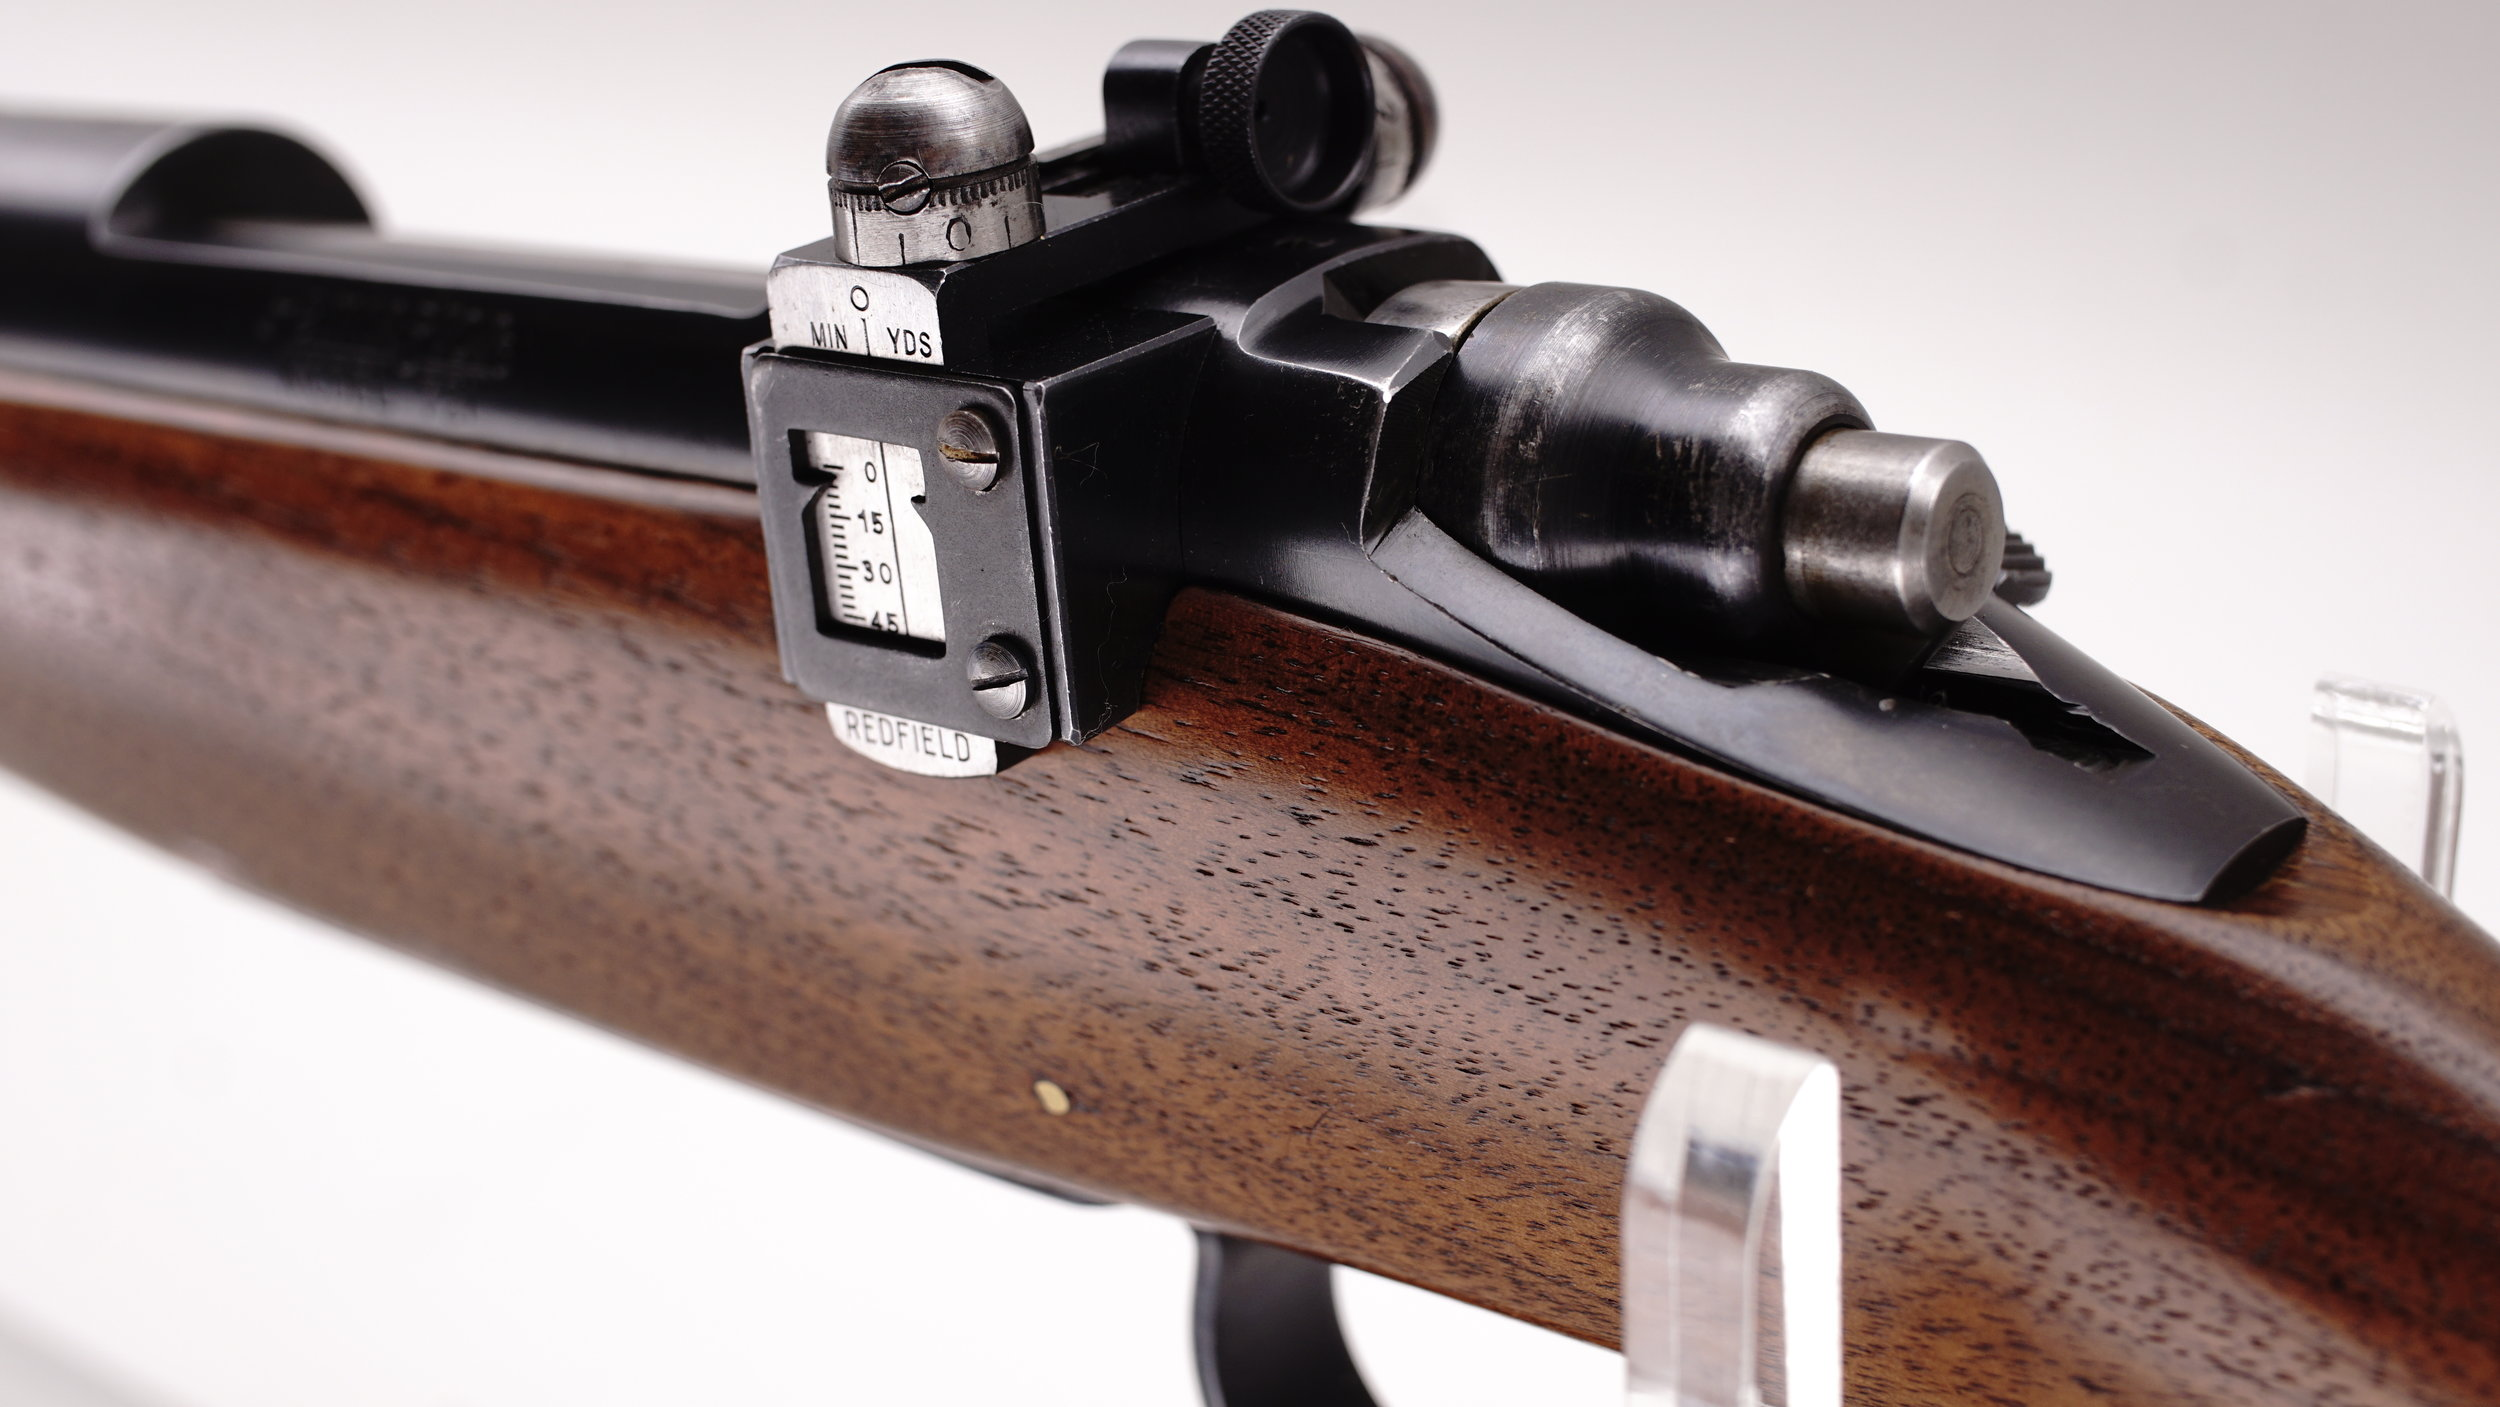 Simplicity. A first year Remington 721 with Redfield adjustable peep sight.